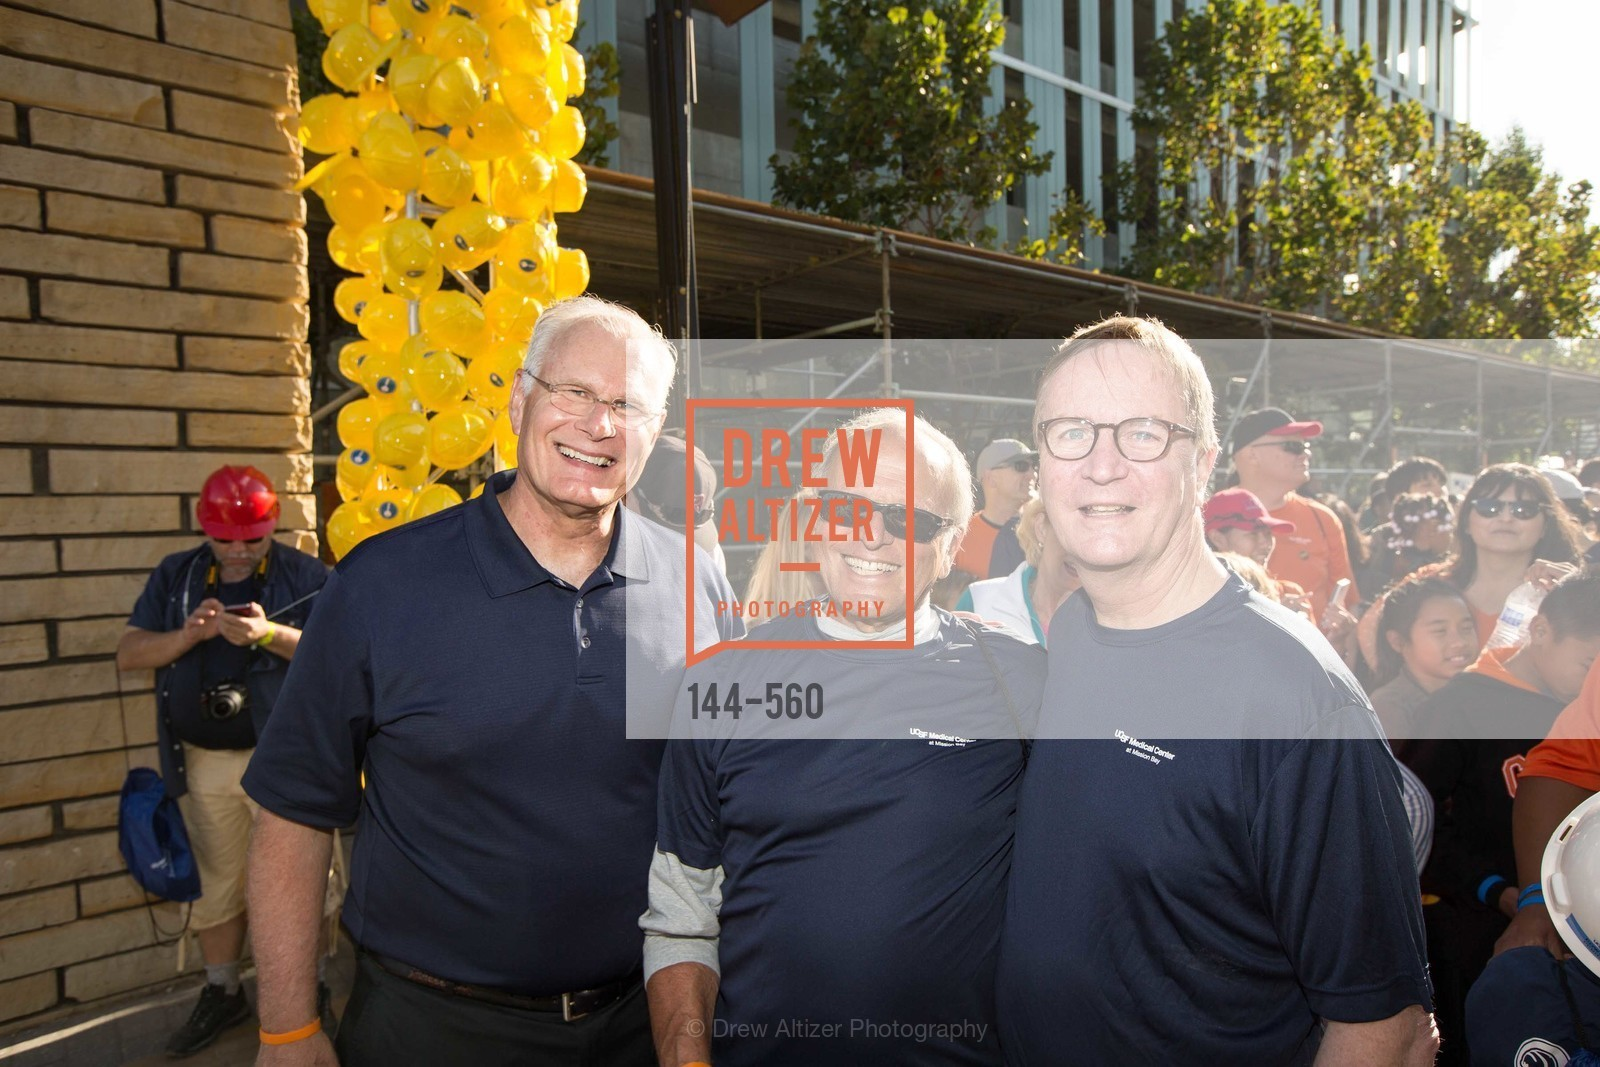 Mark Laret, Bert Lubin, Sam Hawgood, UCSF Medical Center HARD HAT WALK & LIGHTS ON FESTIVAL, US, September 6th, 2014,Drew Altizer, Drew Altizer Photography, full-service event agency, private events, San Francisco photographer, photographer California